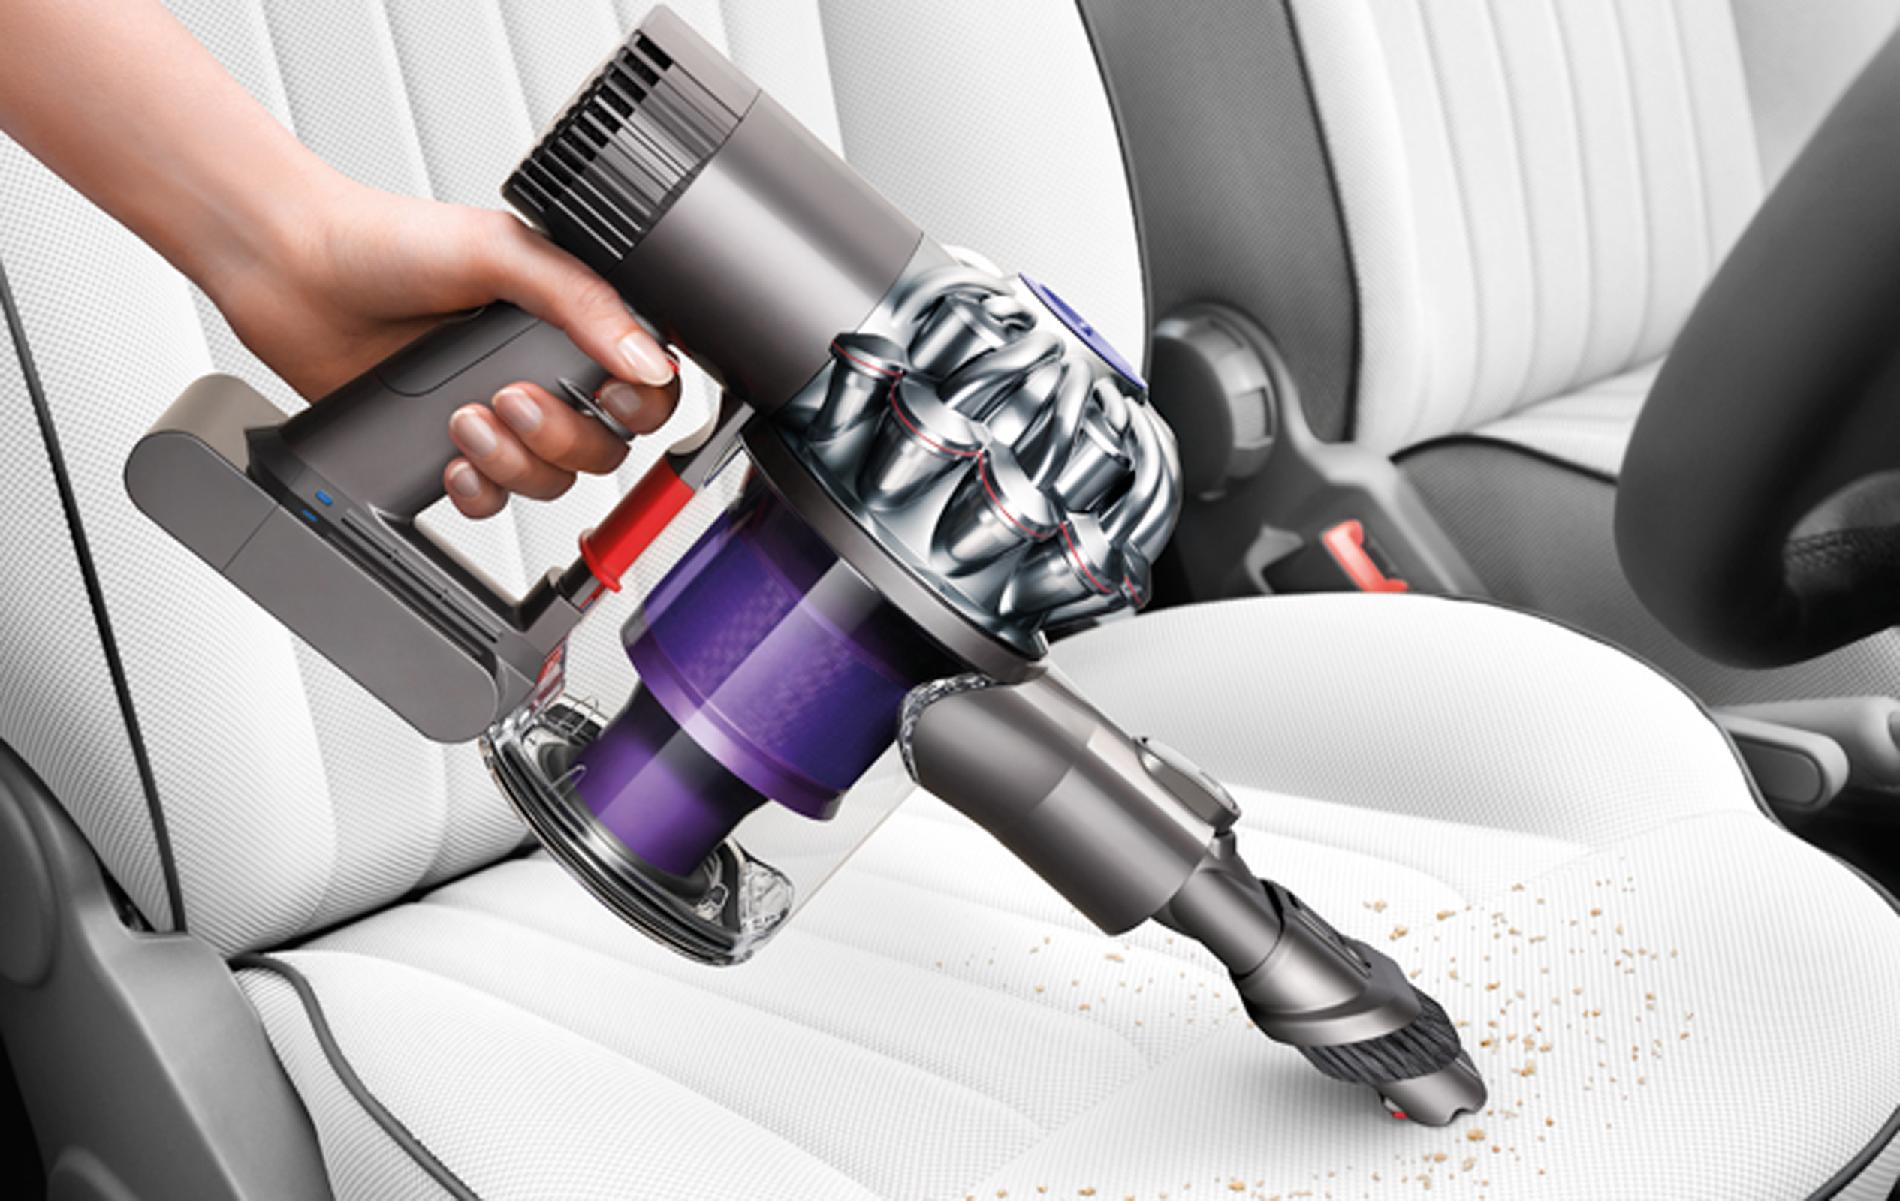 Dyson DC58 Handheld Vacuum Cleaner